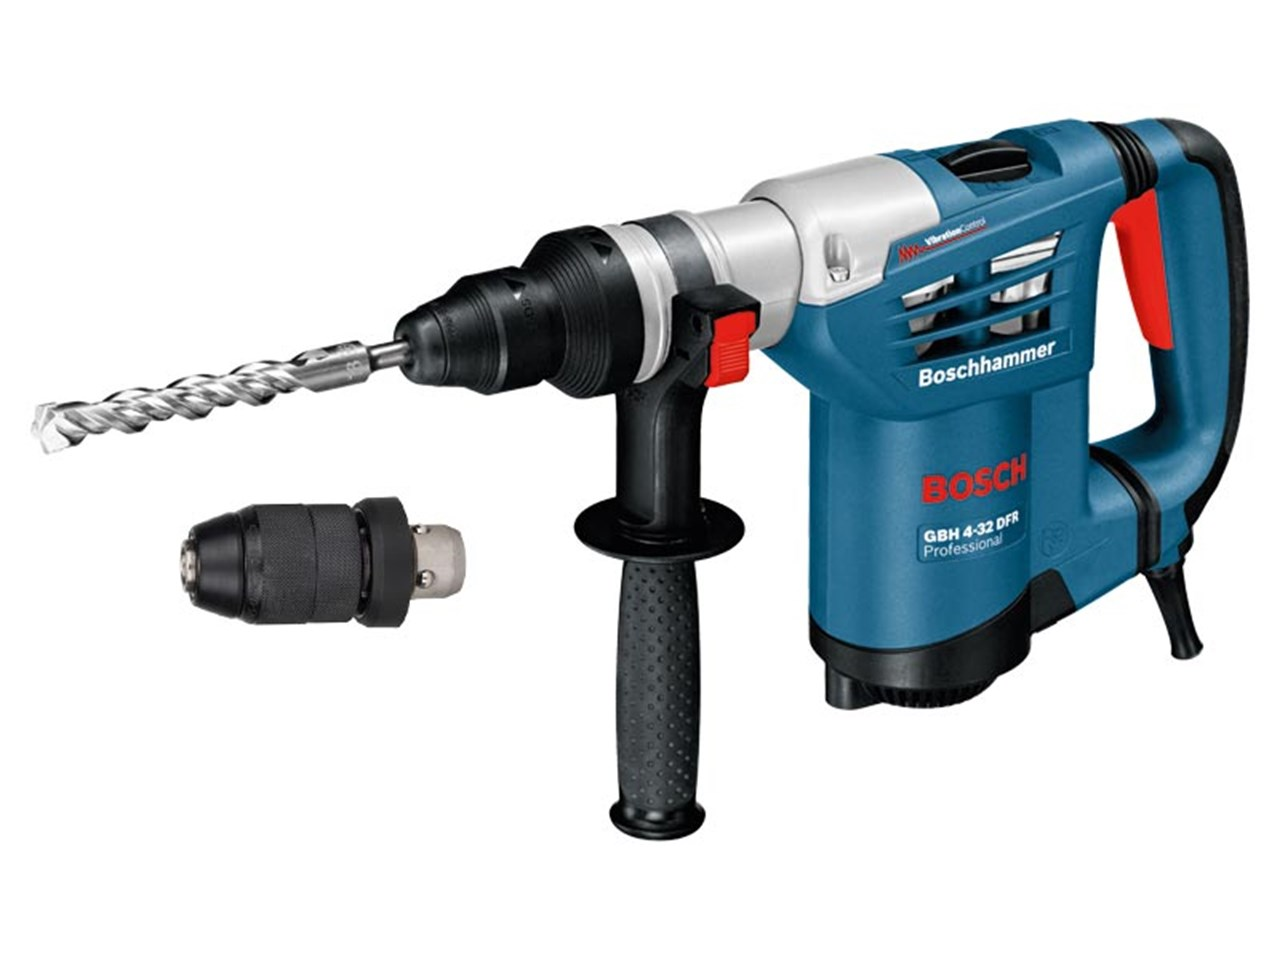 bosch gbh432dfr rotary hammer drill with sds plus 110v 900w. Black Bedroom Furniture Sets. Home Design Ideas